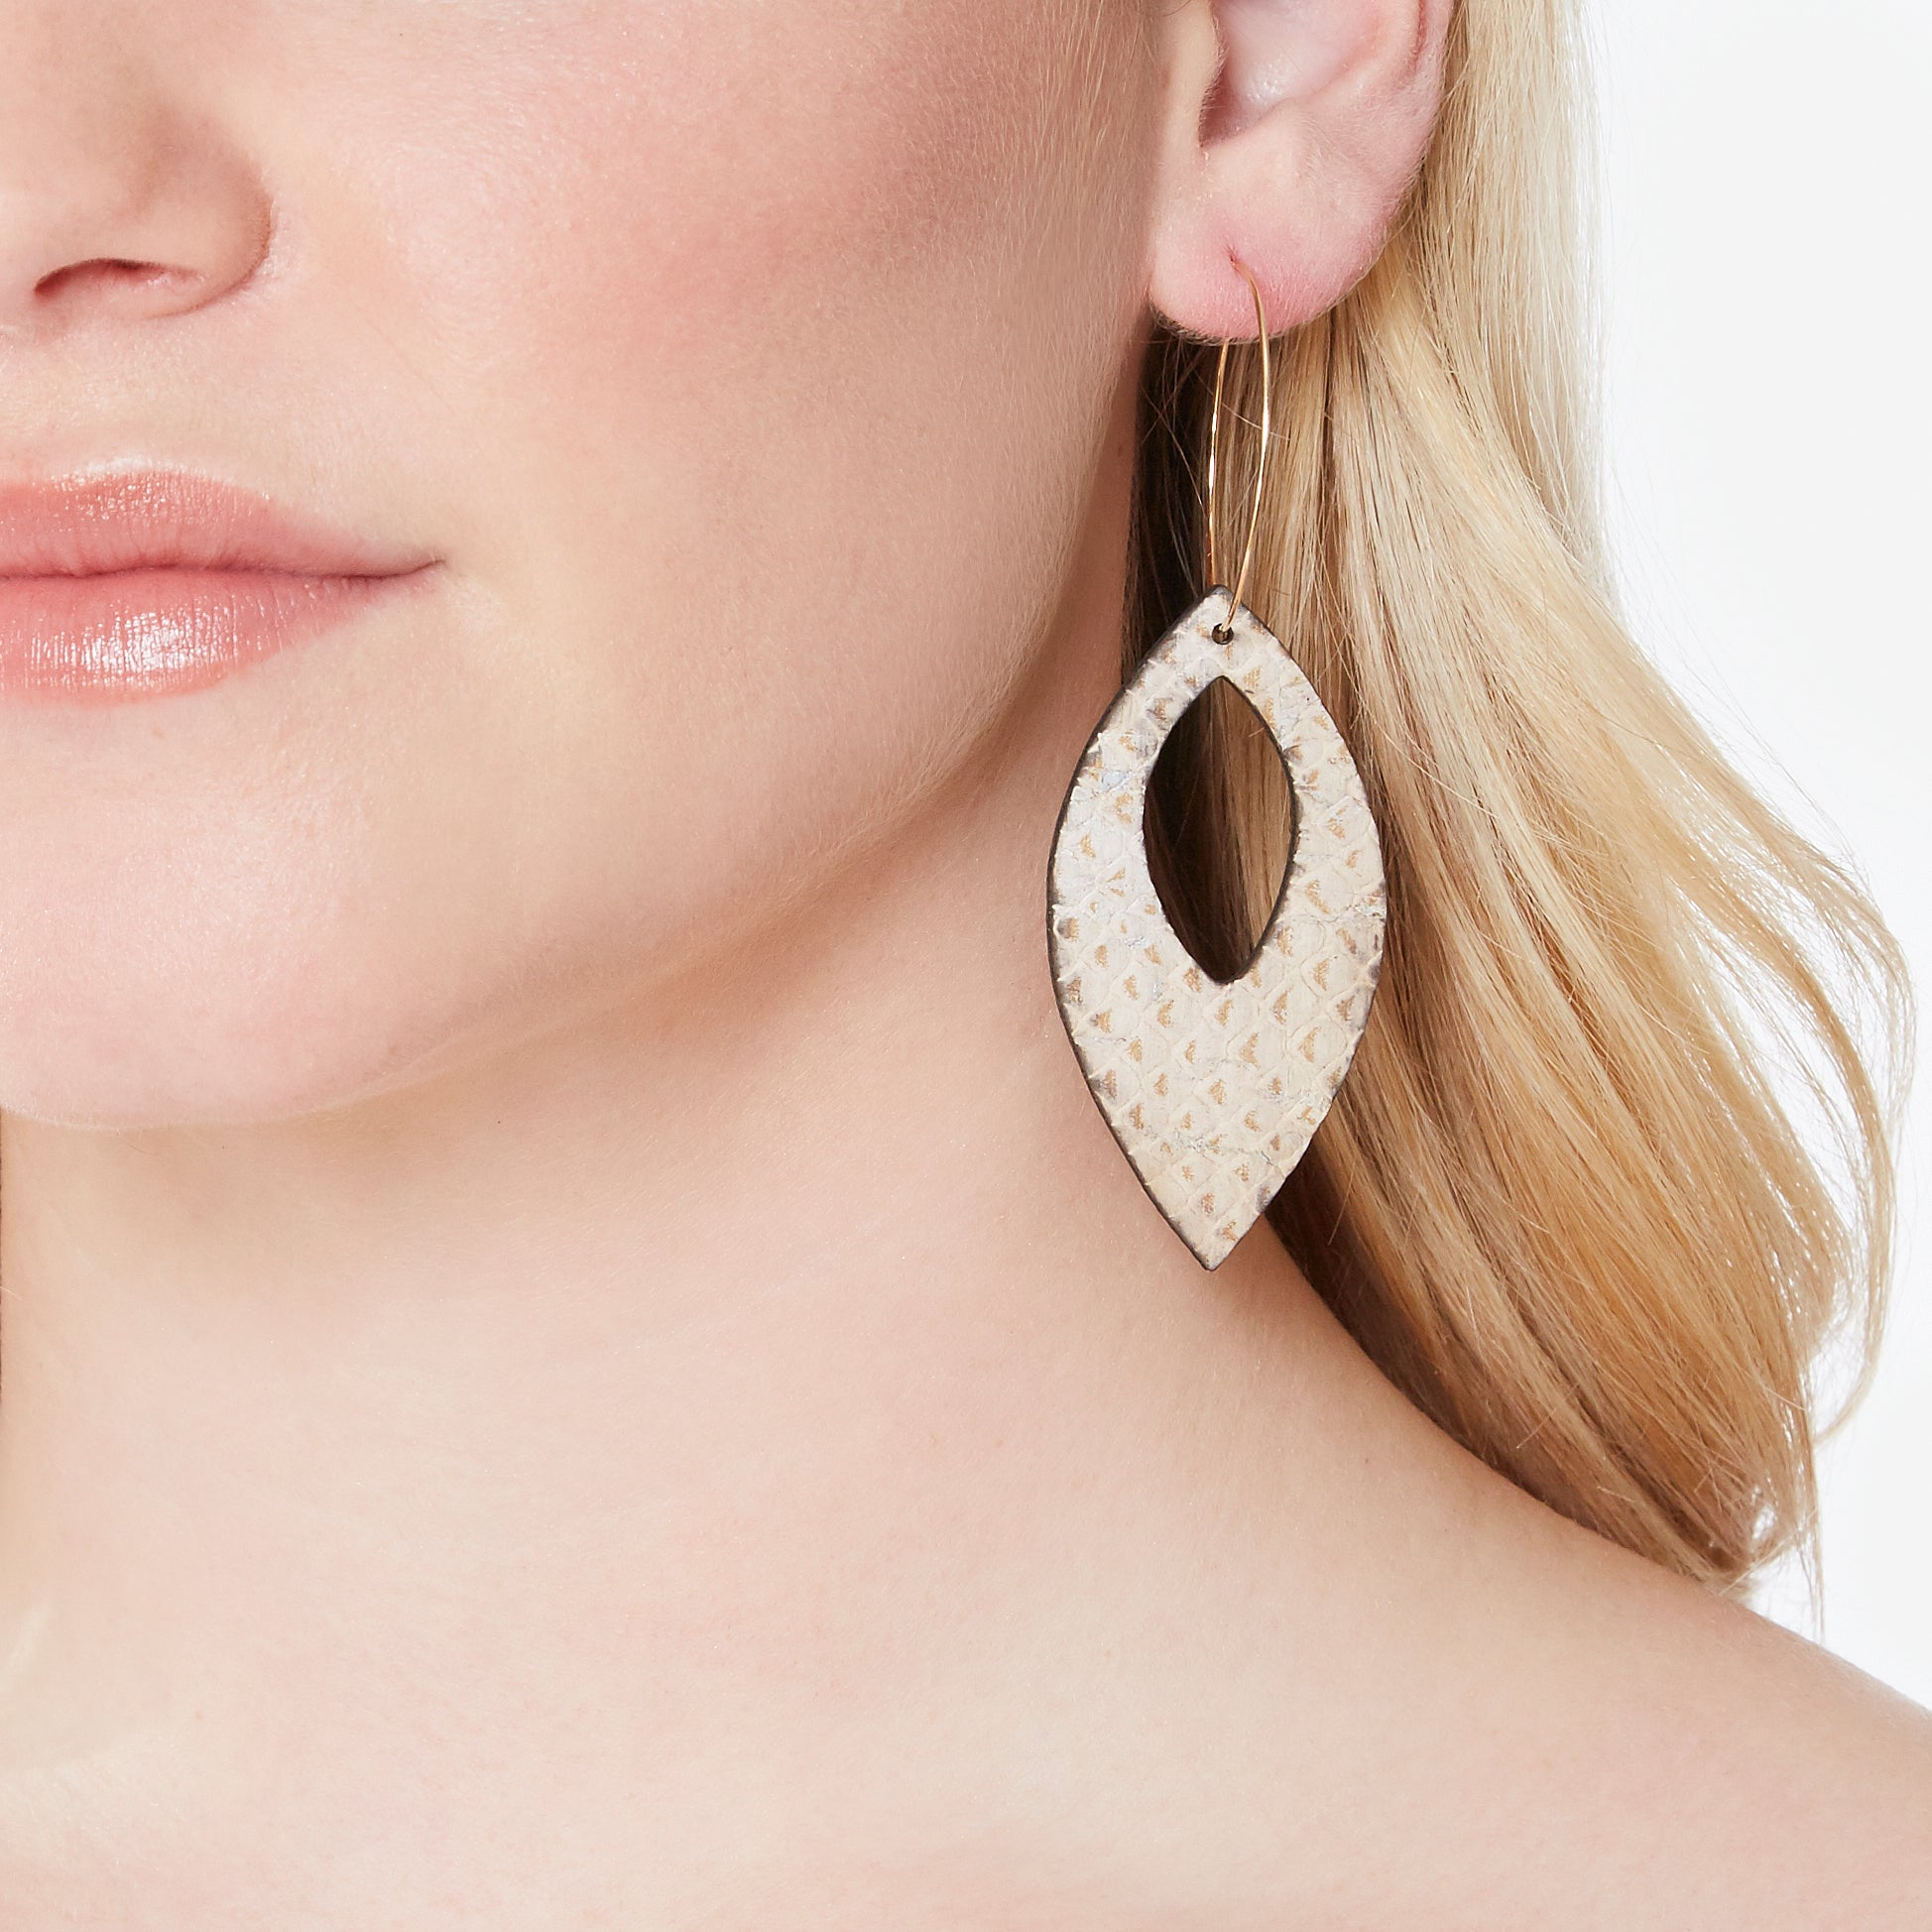 Introducing, Remi Earrings